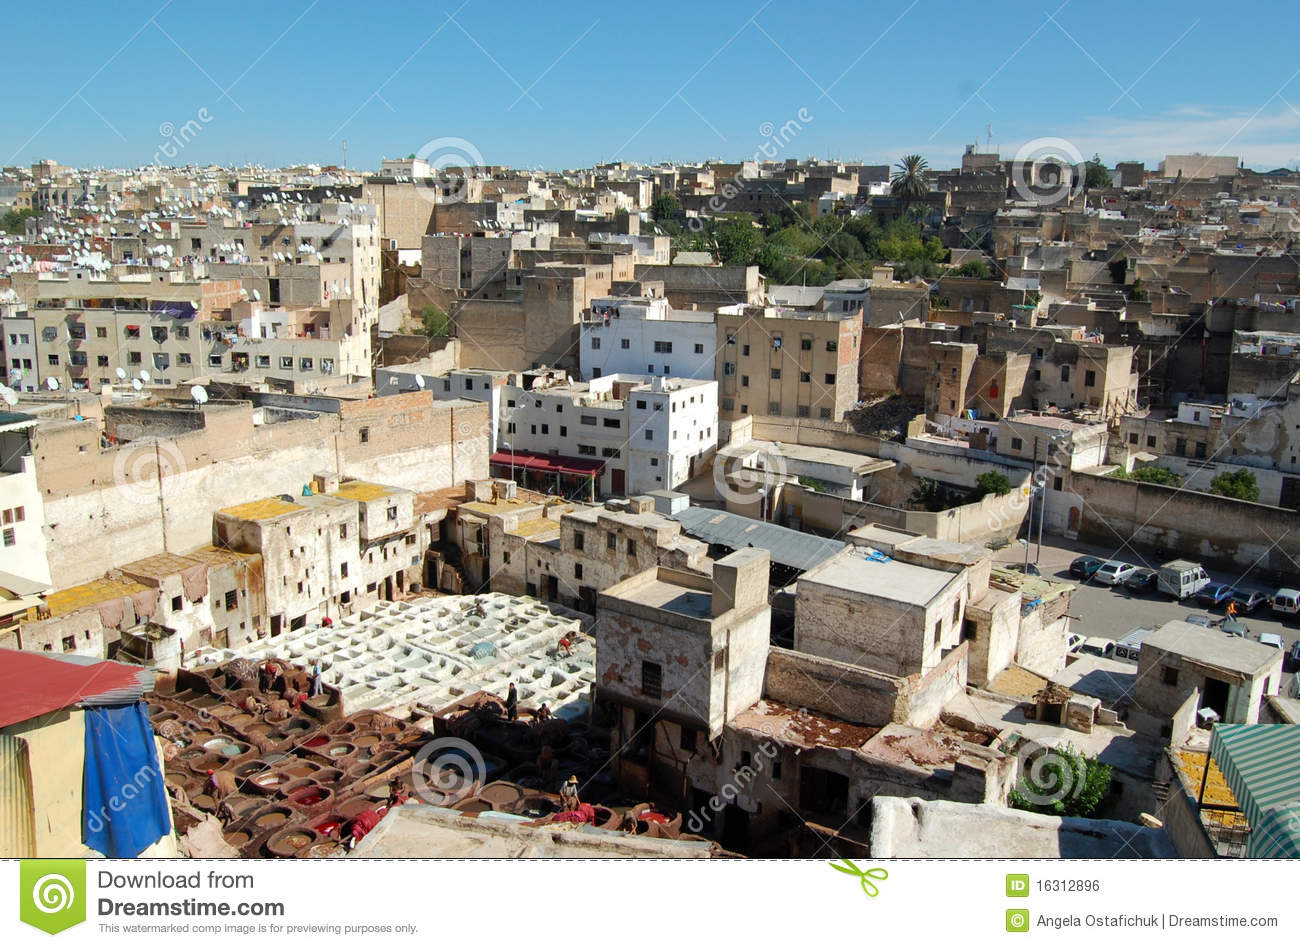 Fez city in Morocco